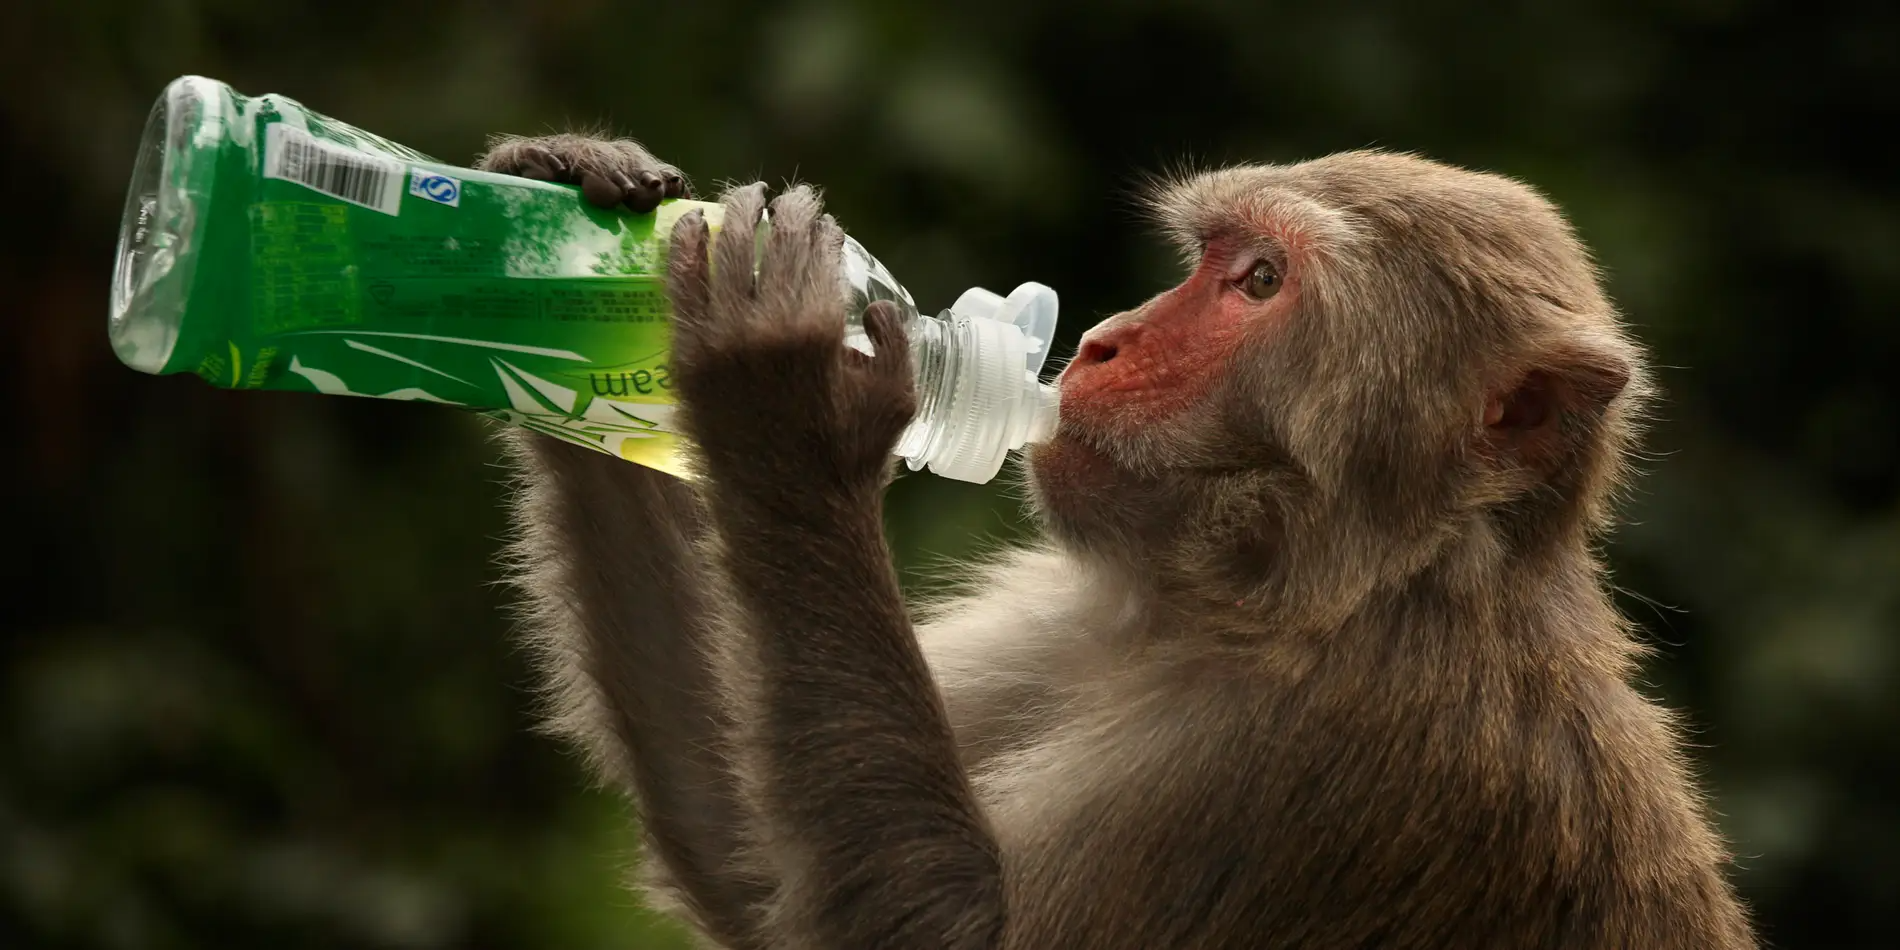 oxford developed vaccine appears to shield monkey from coronavirus infection